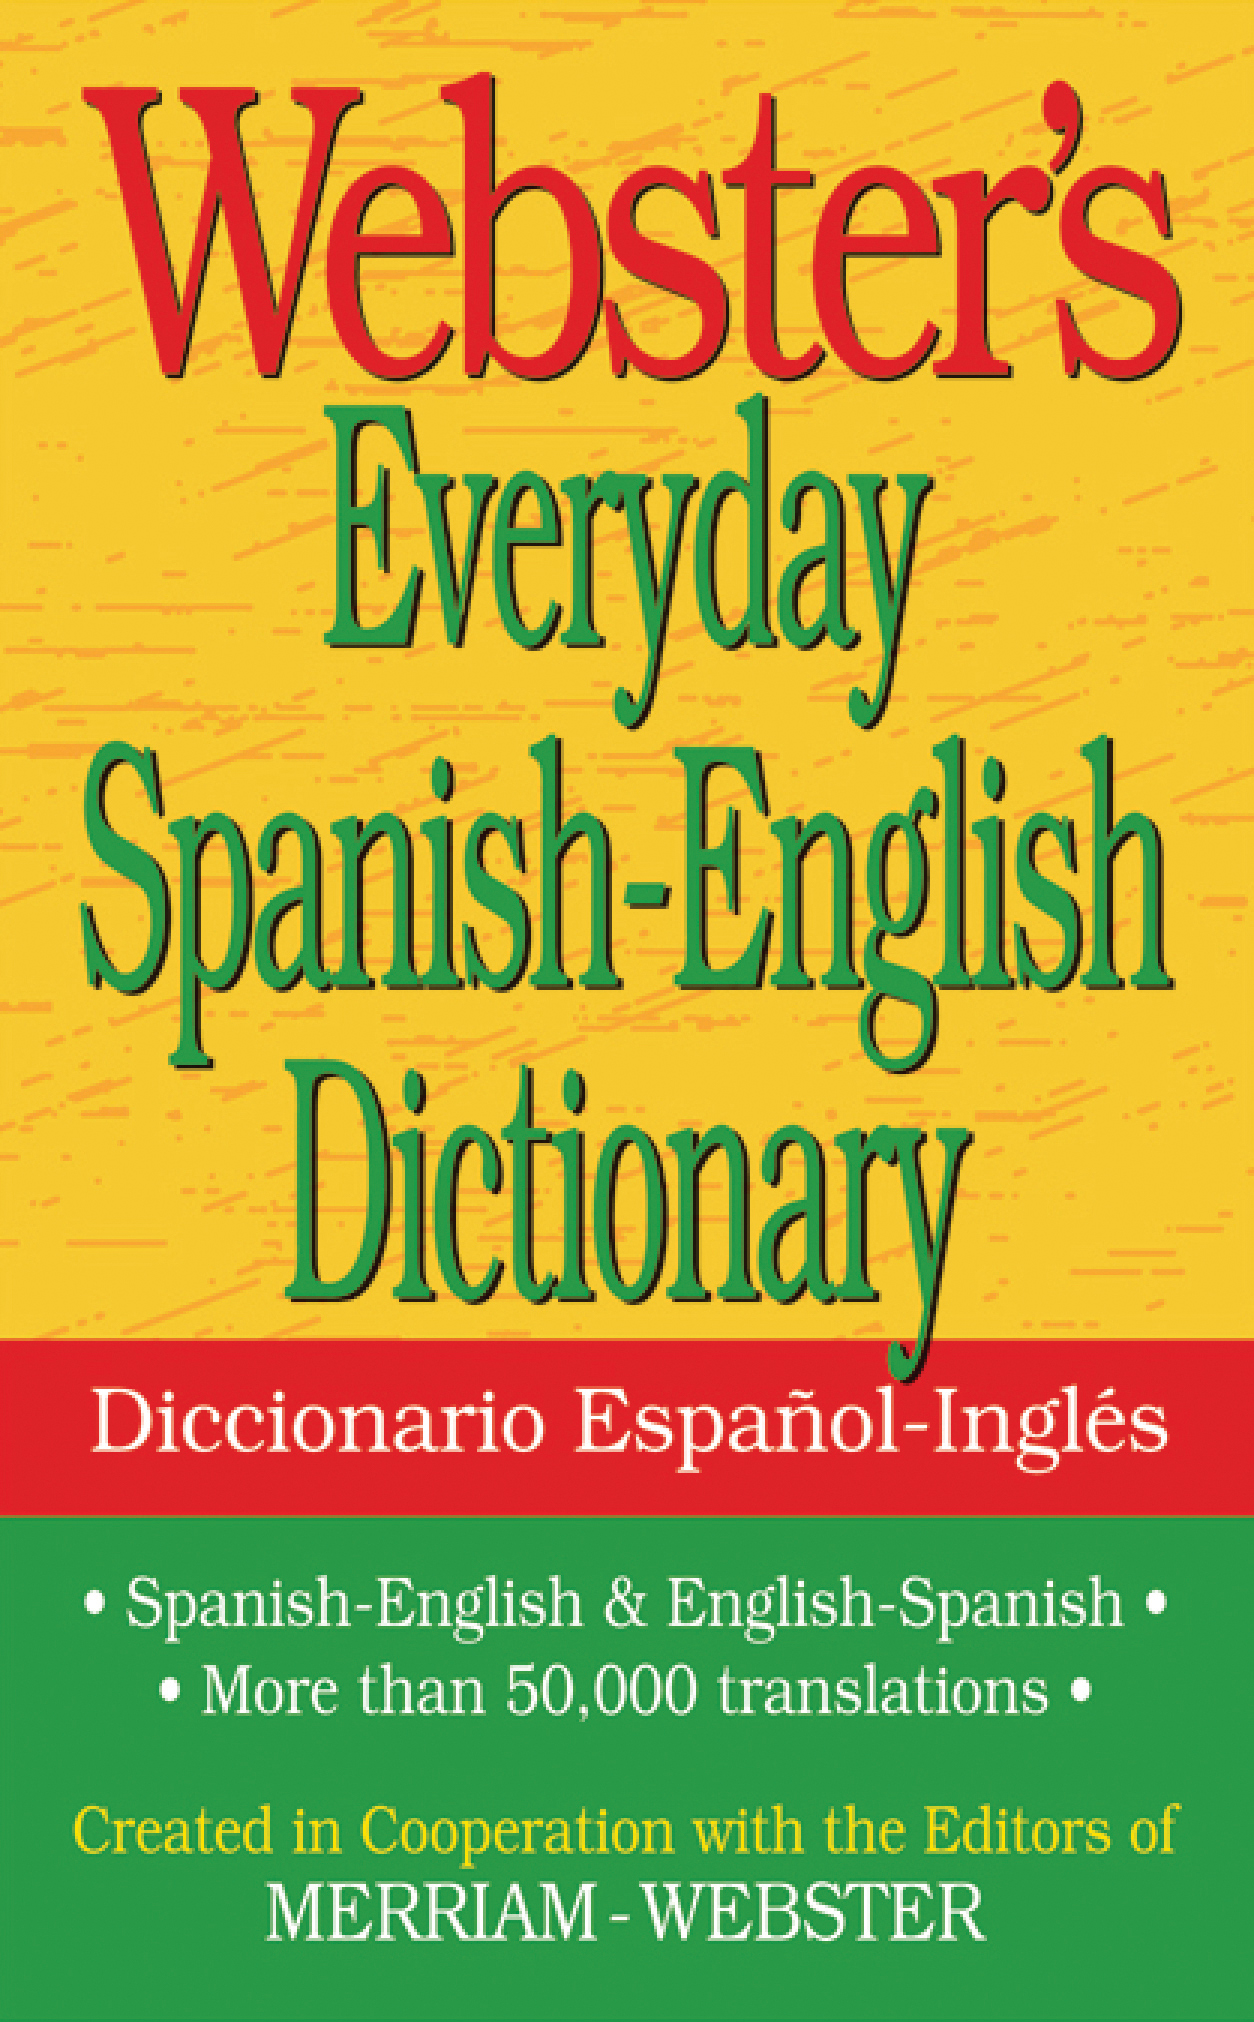 Webster's Everyday Spanish-English Dictionary | Federal